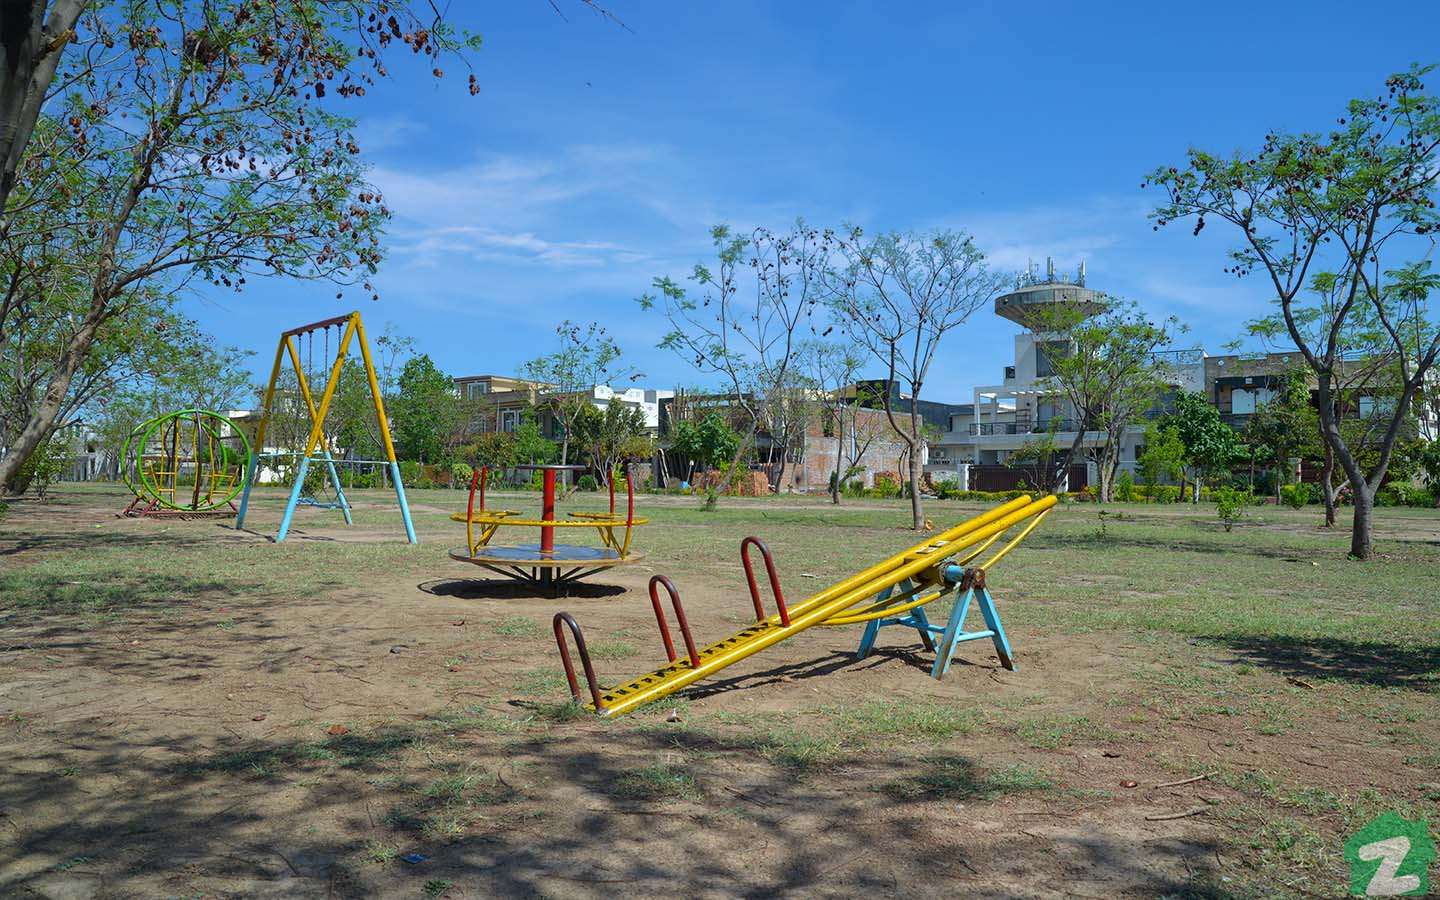 Park with playground equipment for kids